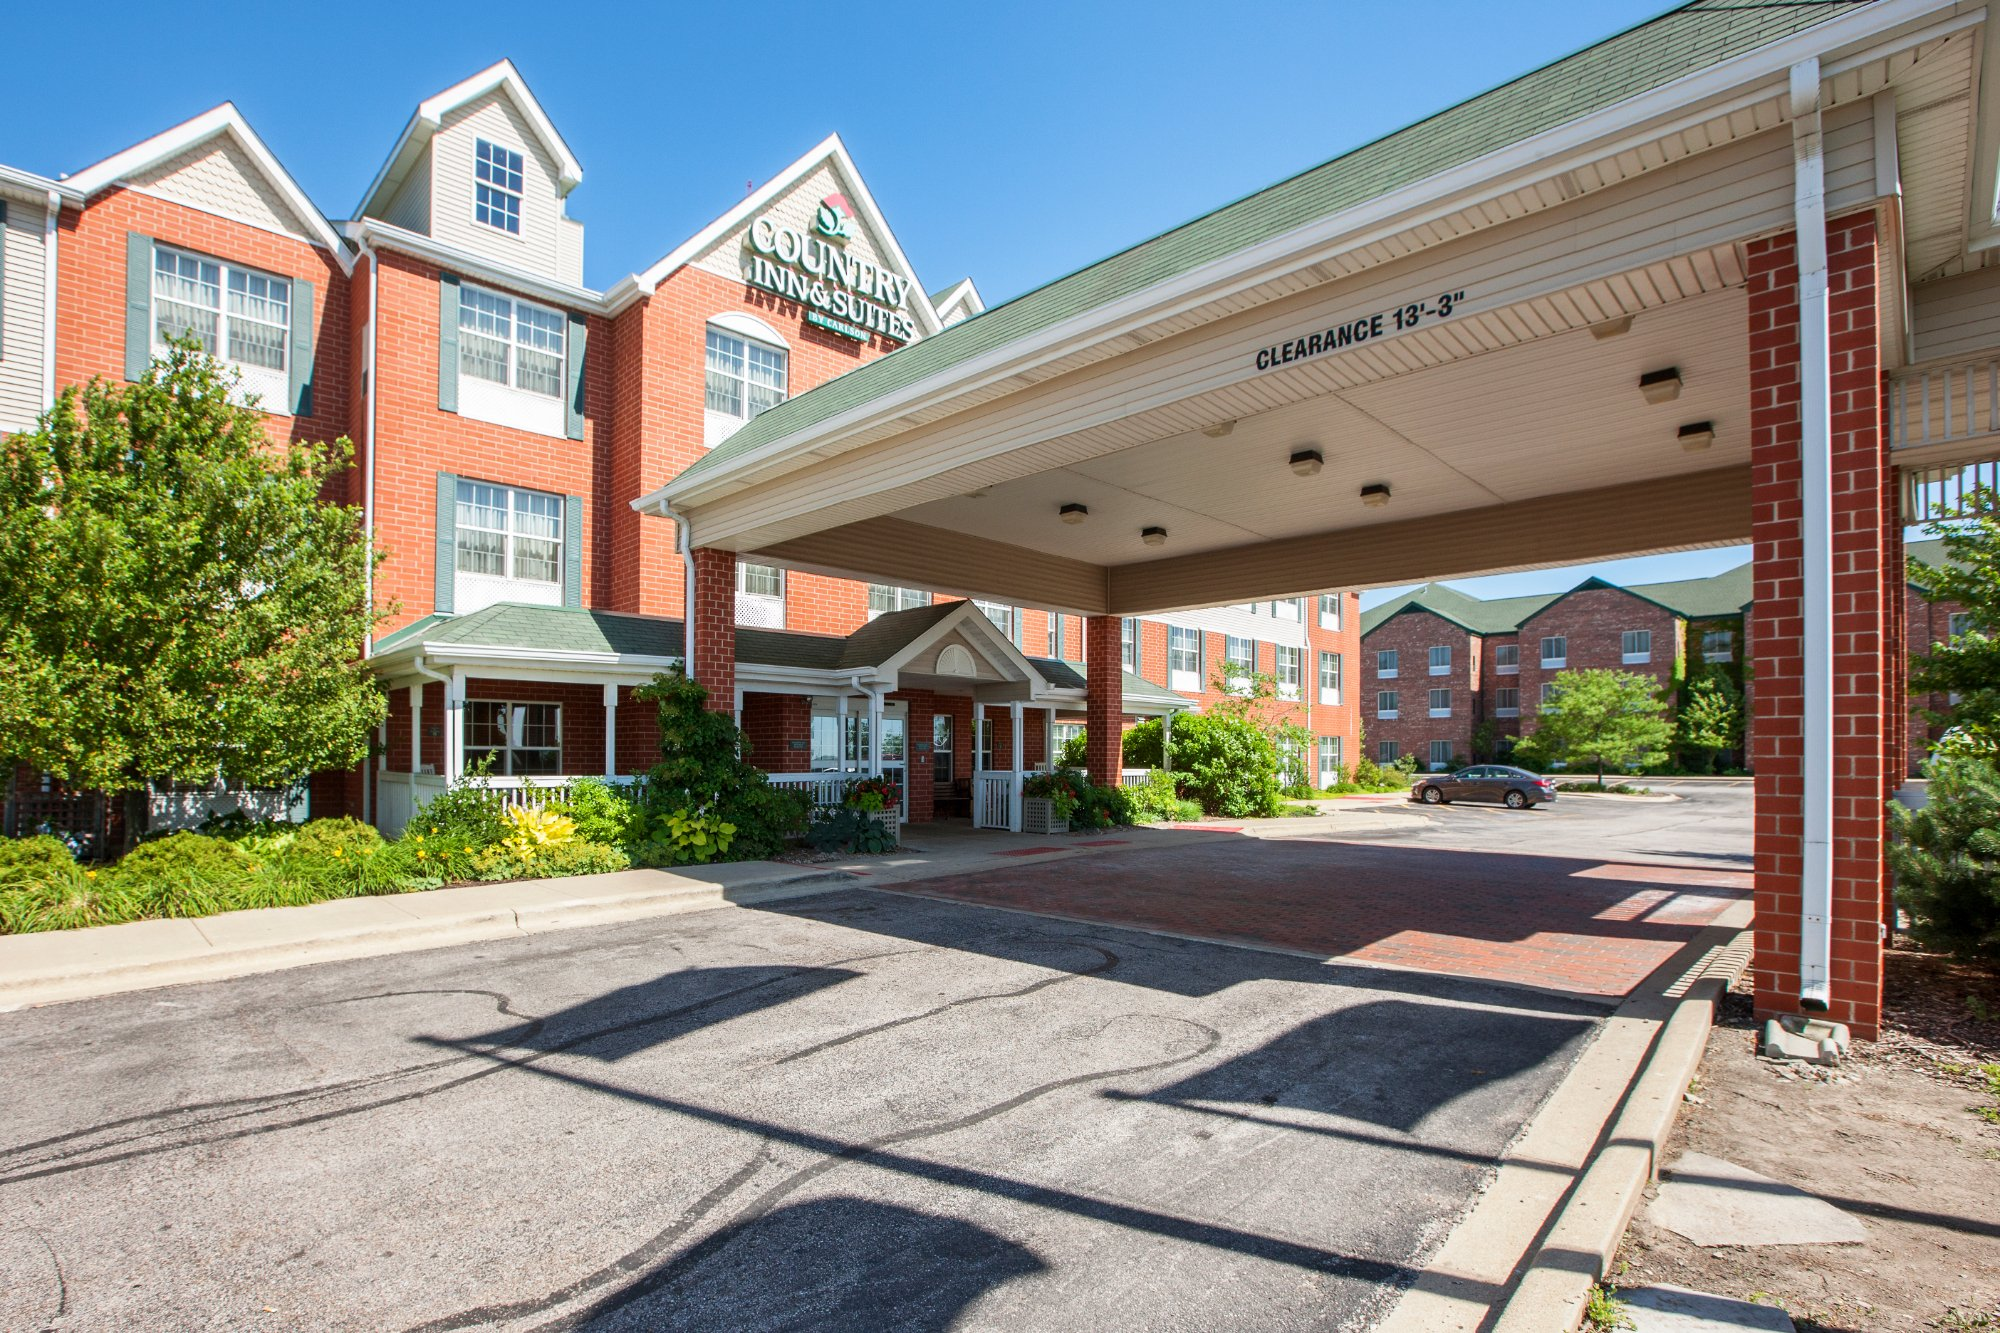 Country Inn & Suites By Carlson, Tinley Park